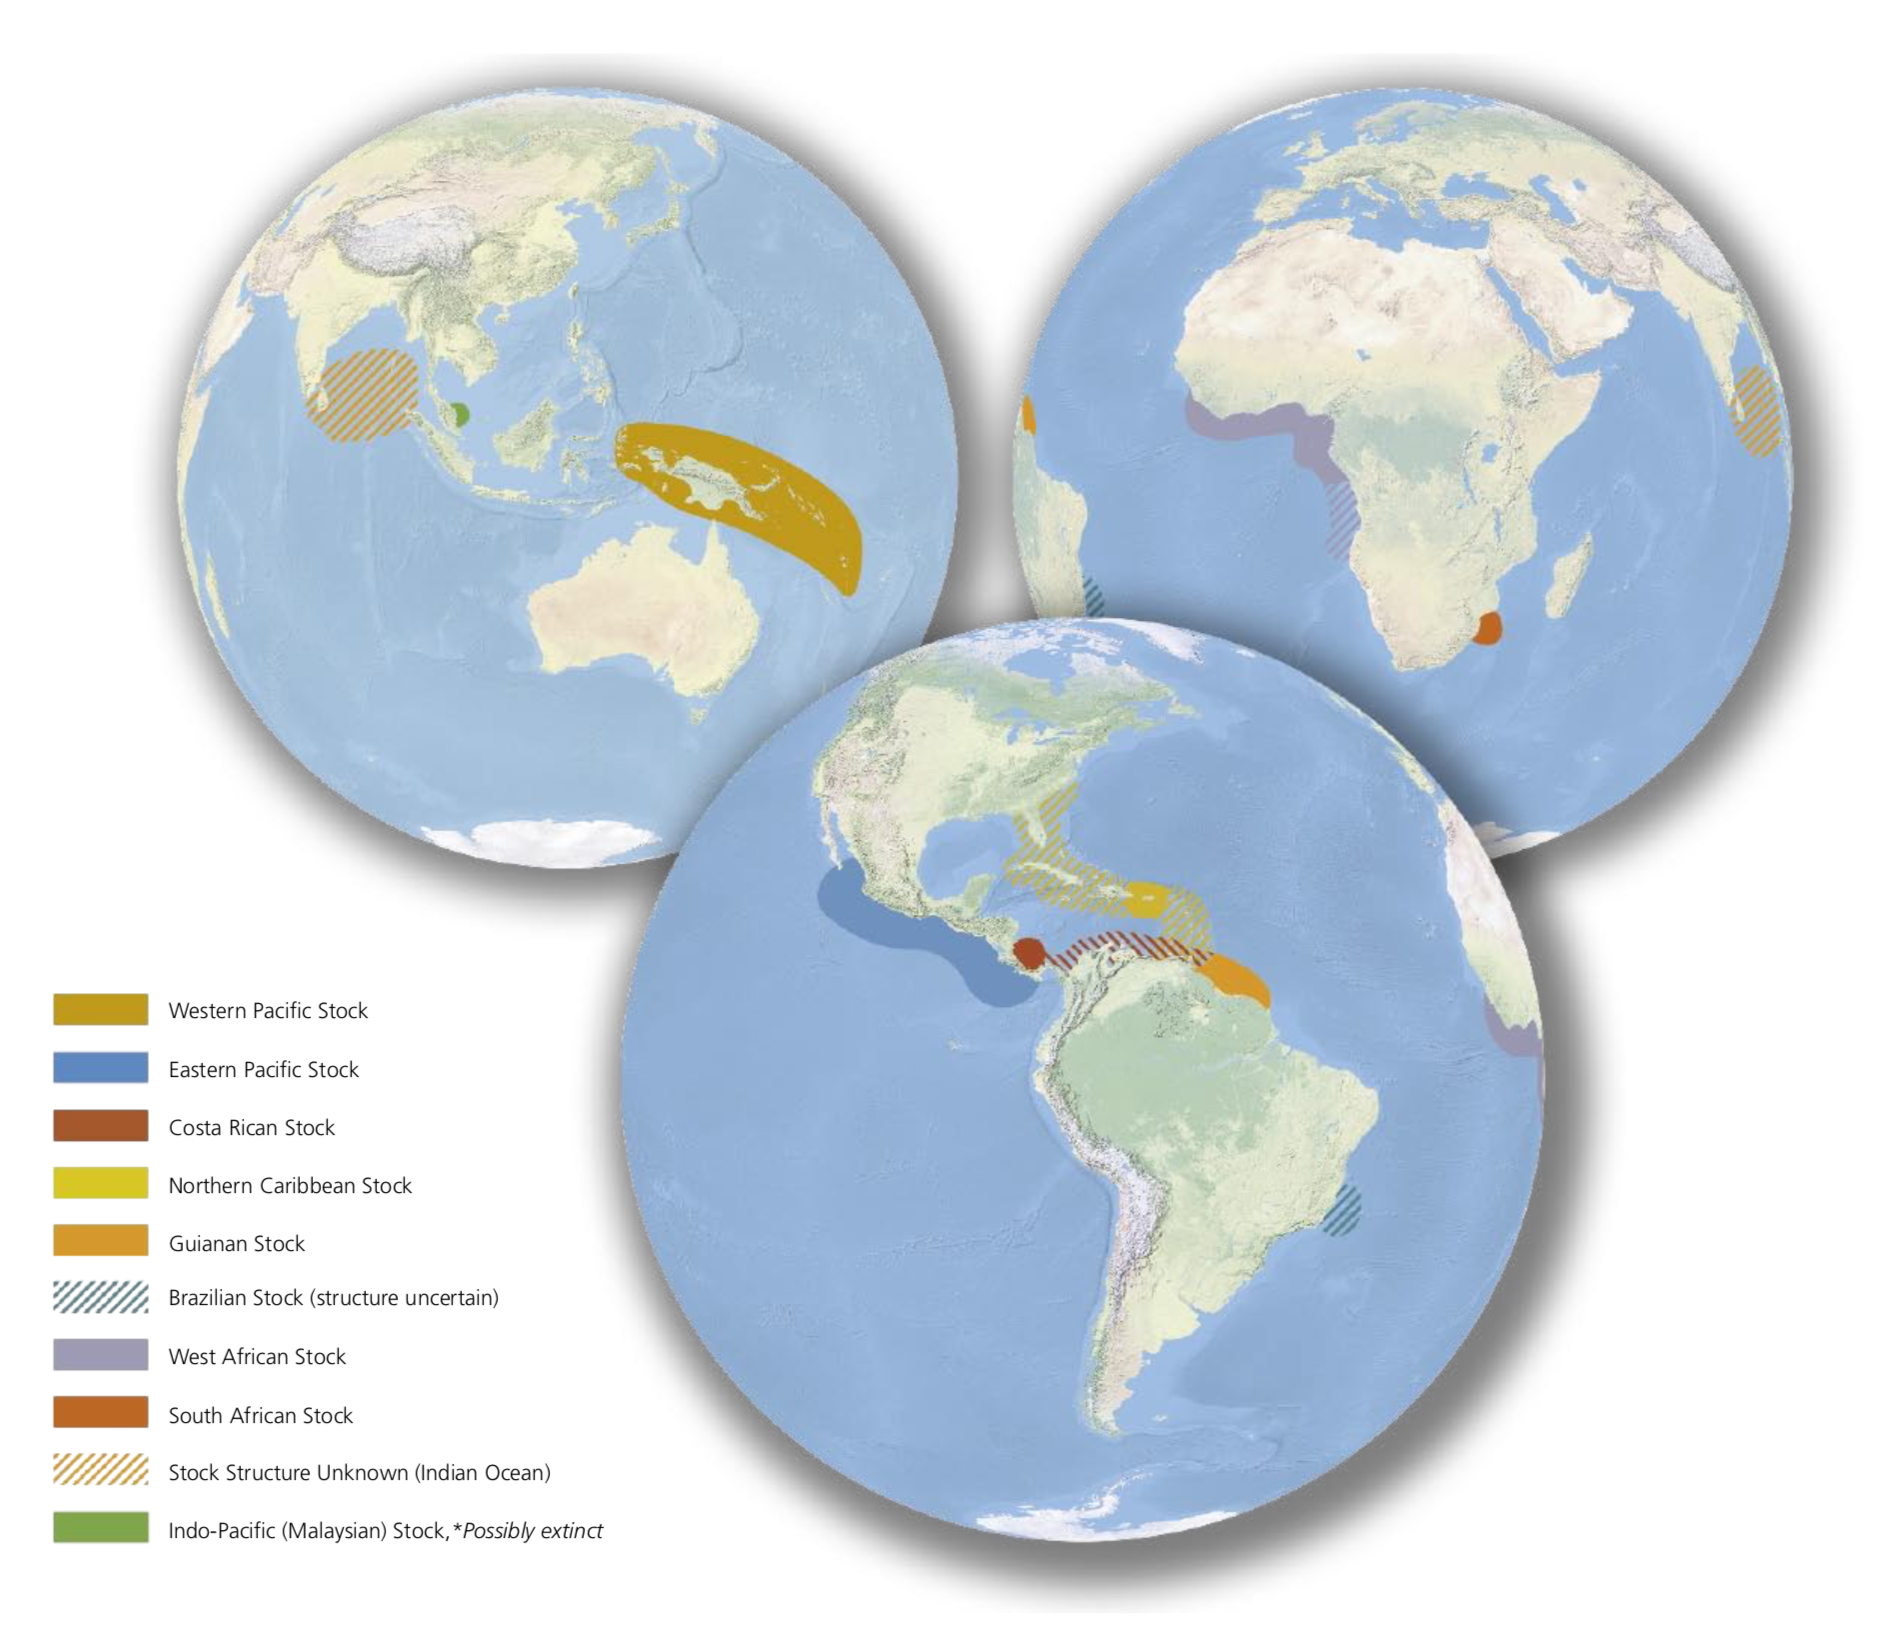 This figure shows the known genetic stocks for leatherback sea turtles. Solid colors indicate the location of major rookeries for known distinct genetic stocks, while the hatched colors mark rookeries for which the genetic stock is not yet fully defined or its boundaries unclear. One distinct stock, in Malaysia, may no longer exist, and the genetic structure of rookeries in the Indian Ocean remains unknown. © CONSERVATION INTERNATIONAL AND ROWE DESIGN HOUSE